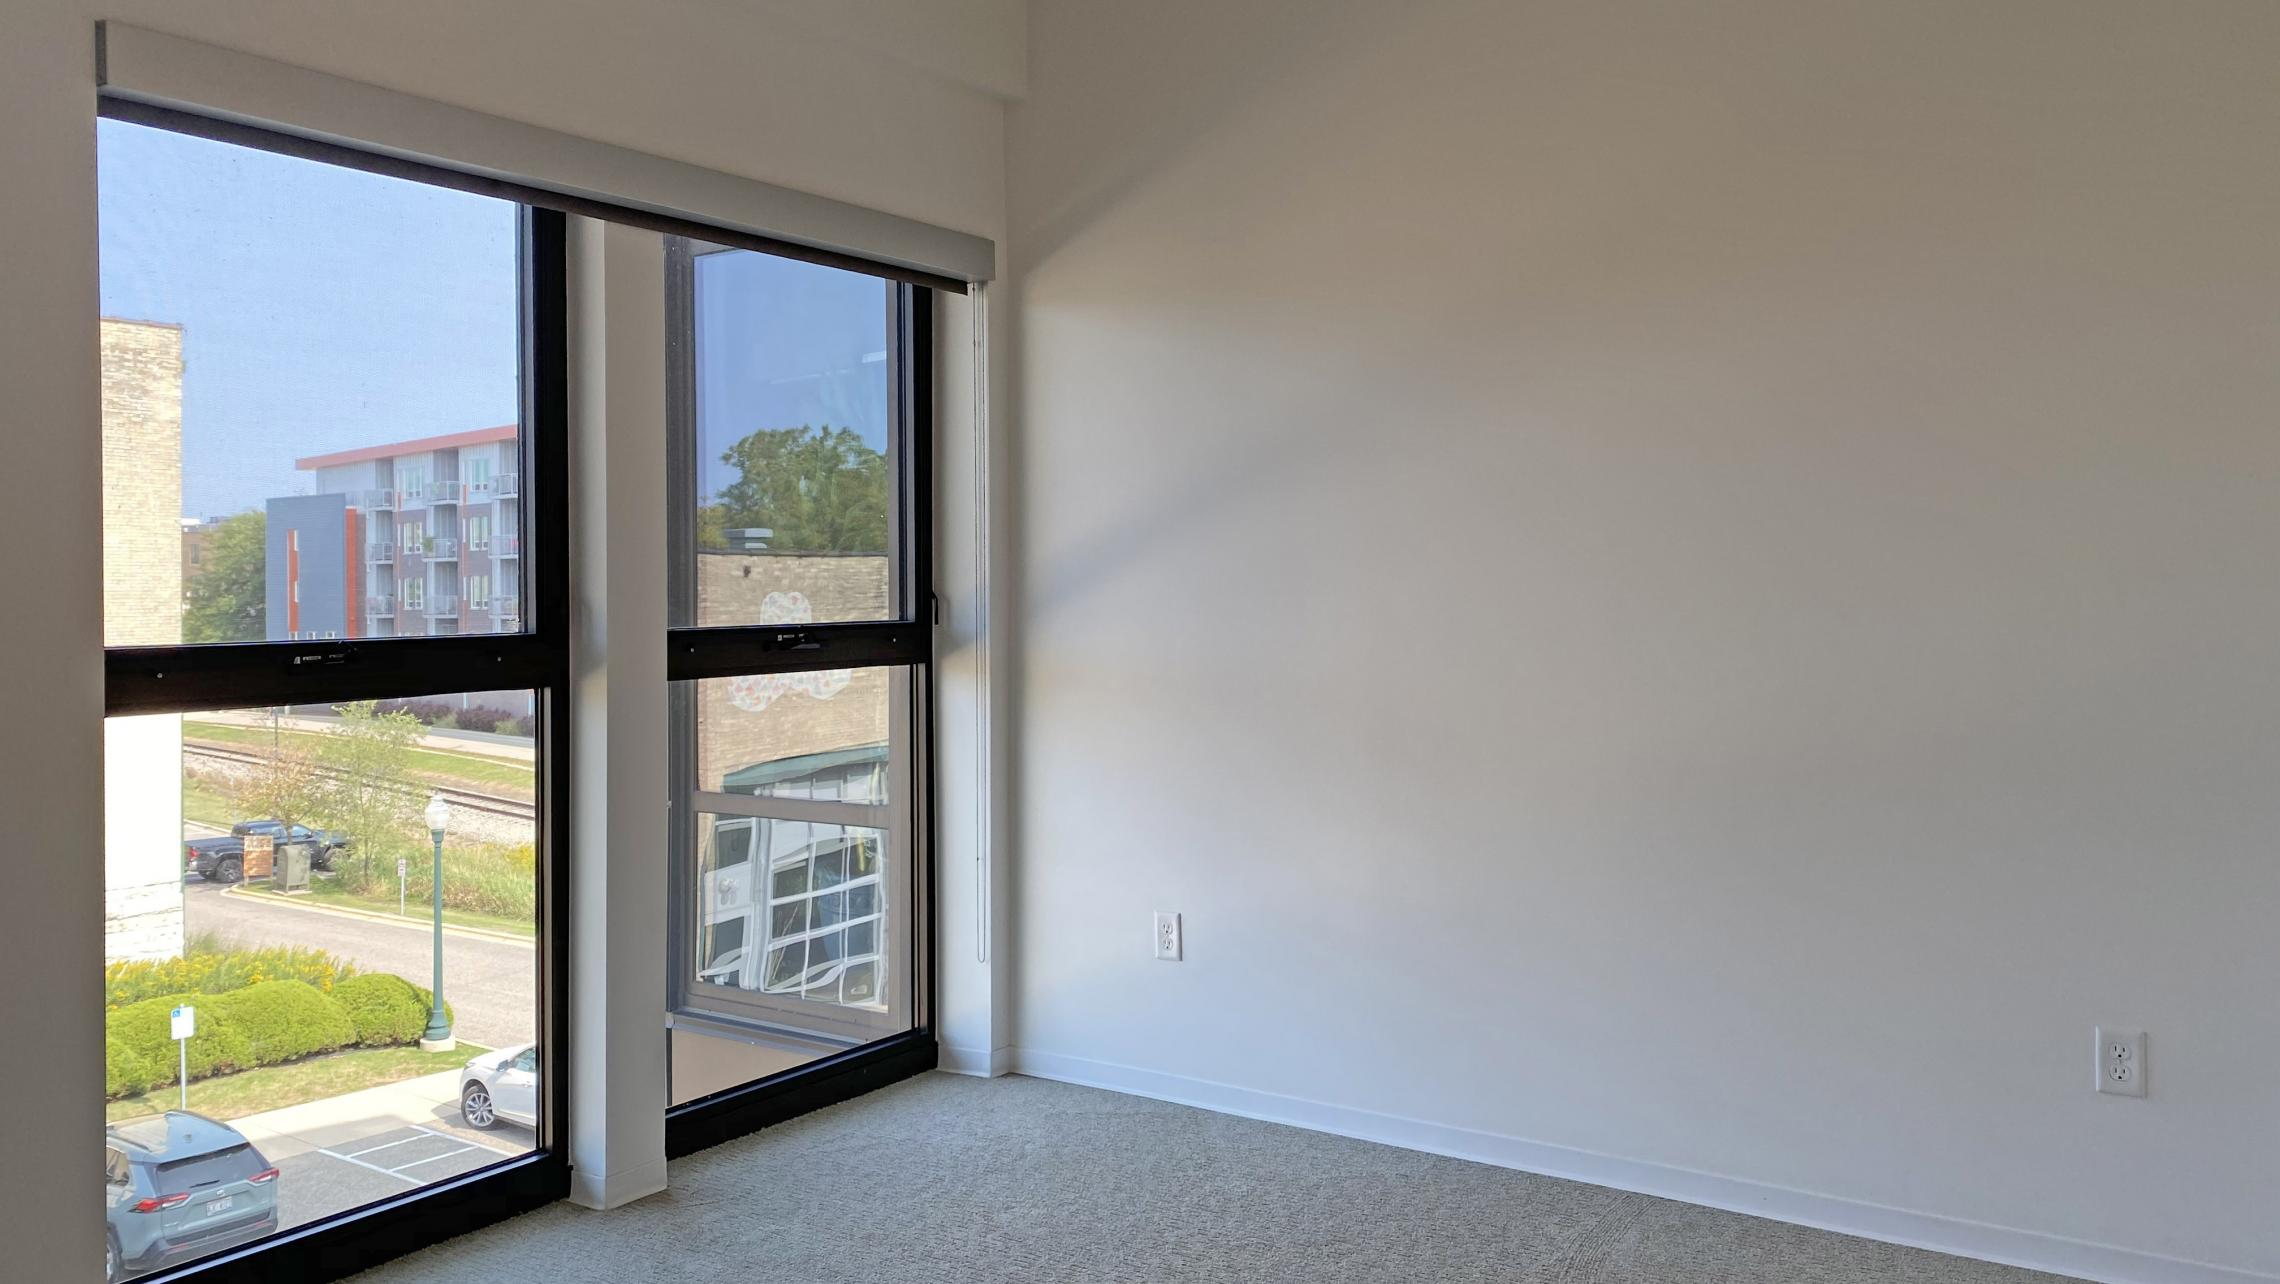 SEVEN27-The-Yards-Apartment-322-Two-Bedroom-Modern-Upscale-Luxury-Living-Kitchen-Bathroom-Design-Lounge-Fitness-Gym-Courtyard-Lake-View-Downtown-Madison